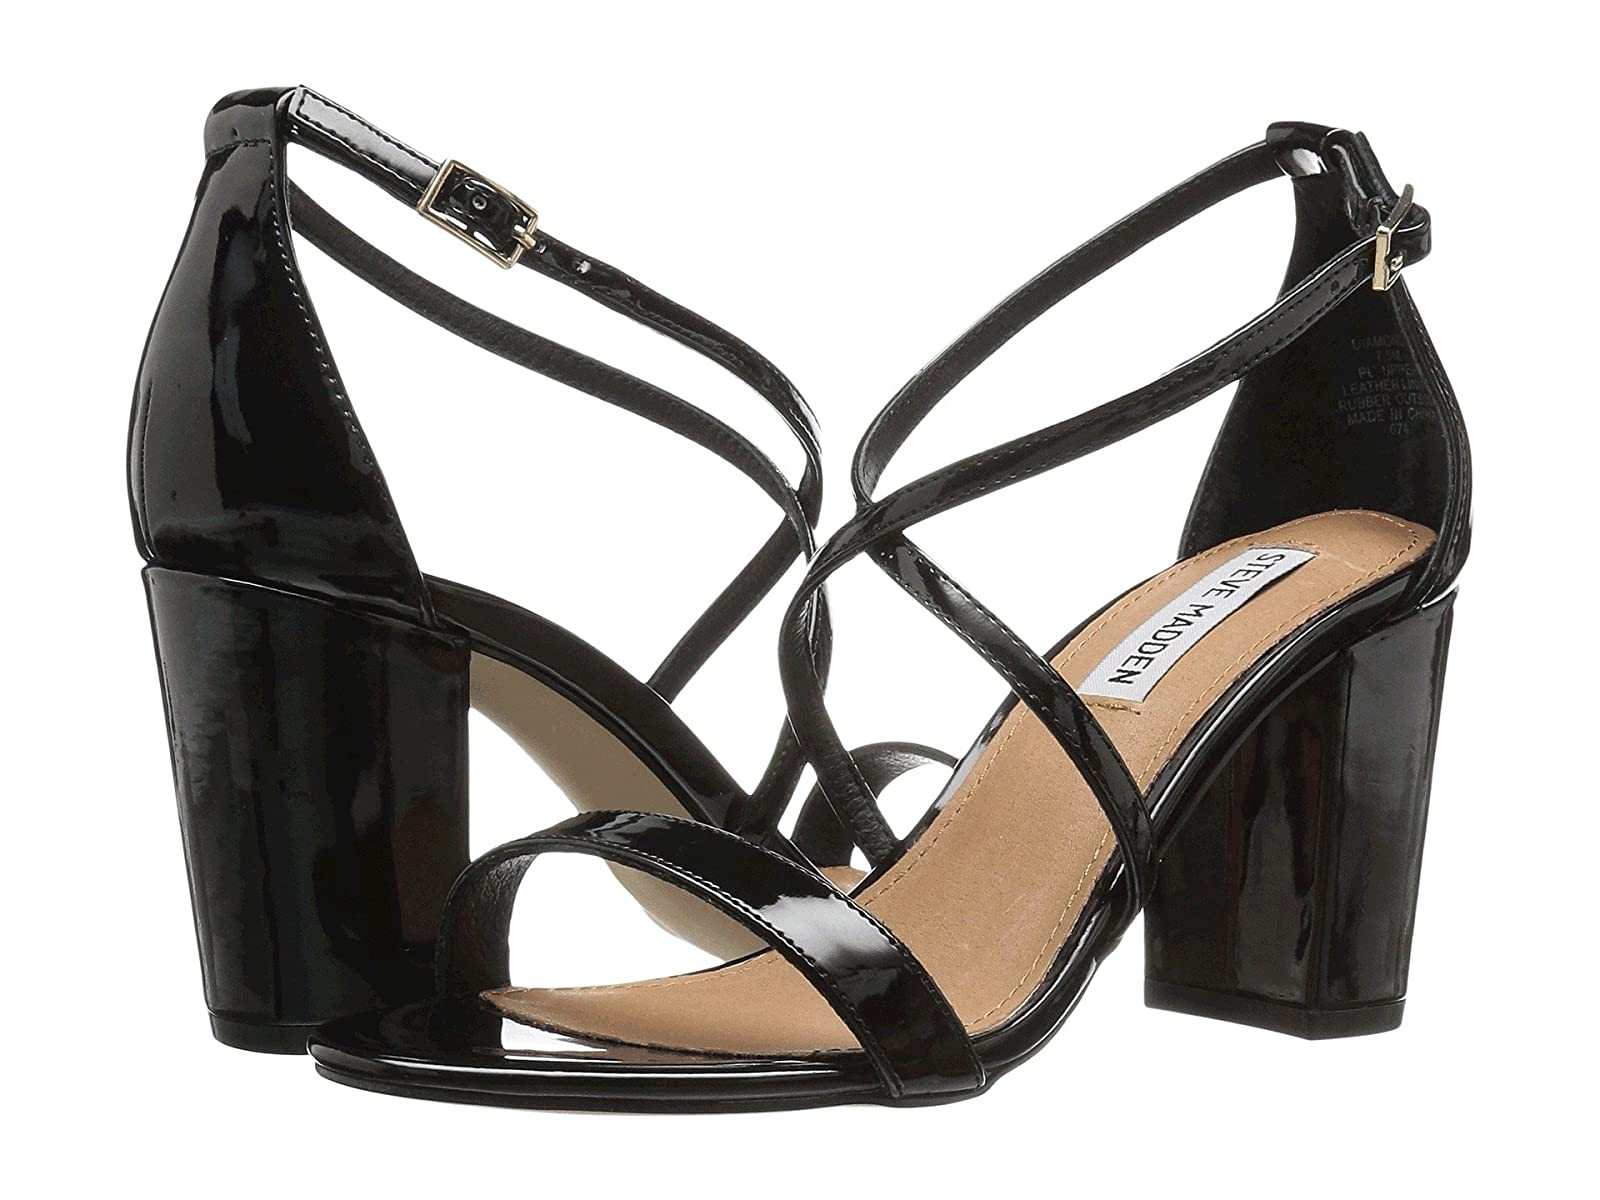 Steve Madden DiamondeCheap and distinctive eye-catching shoes